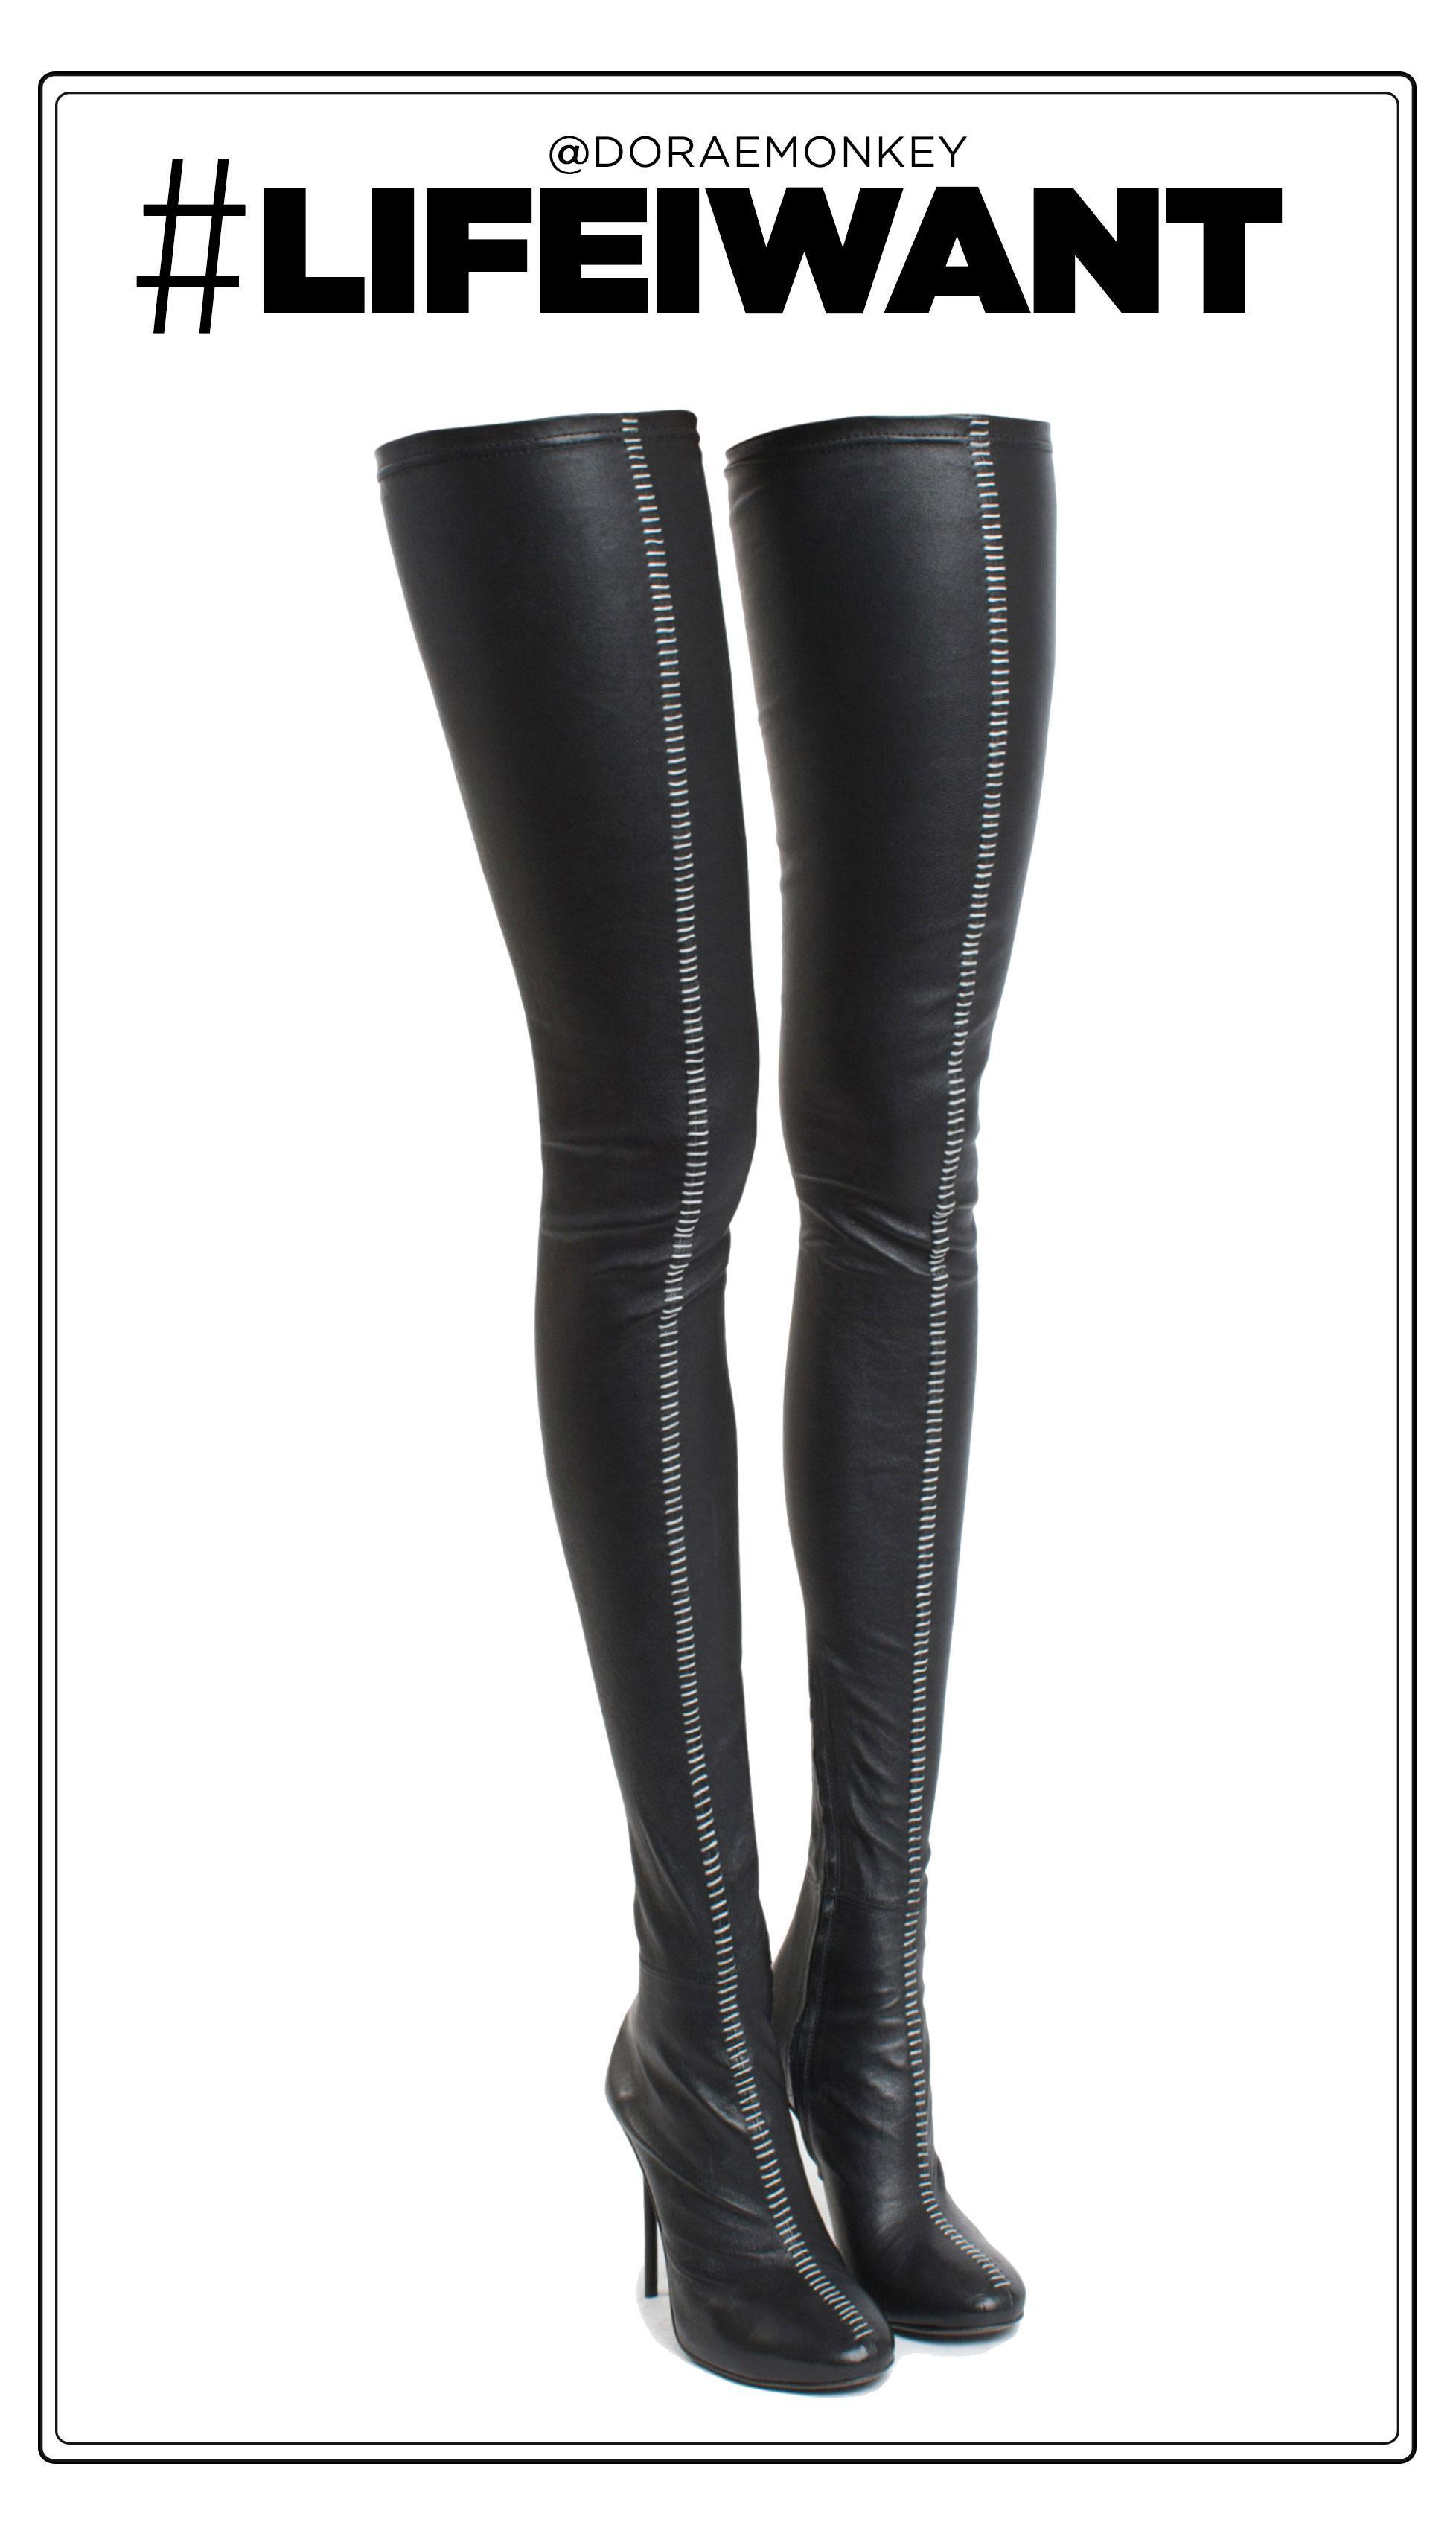 LifeIWant: Haider Ackermann Hand Stitched Thigh-High Boots